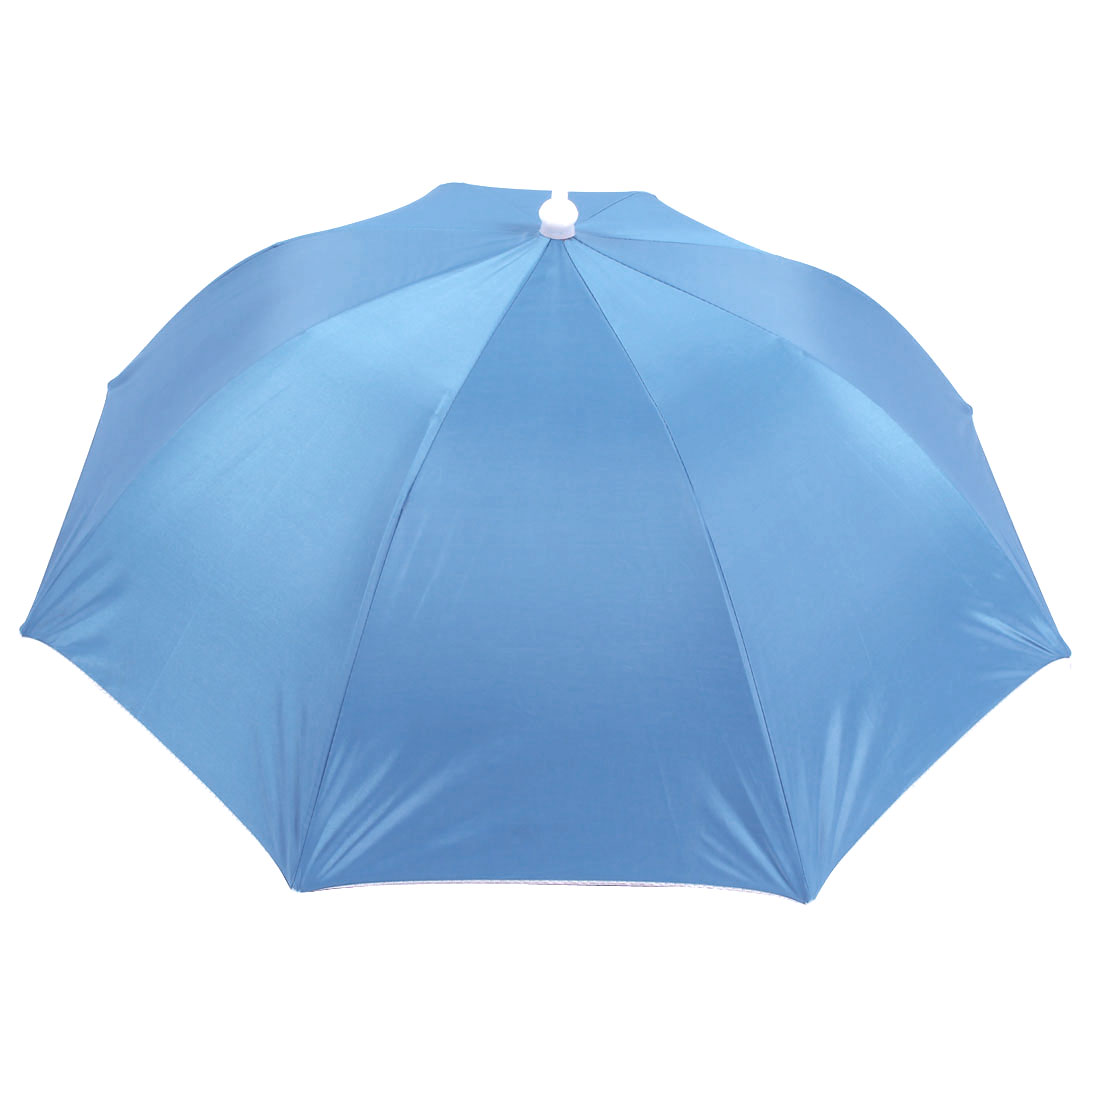 "28"" Dia. Baby Blue Polyester Hands Free Fishing Umbrella Hat"